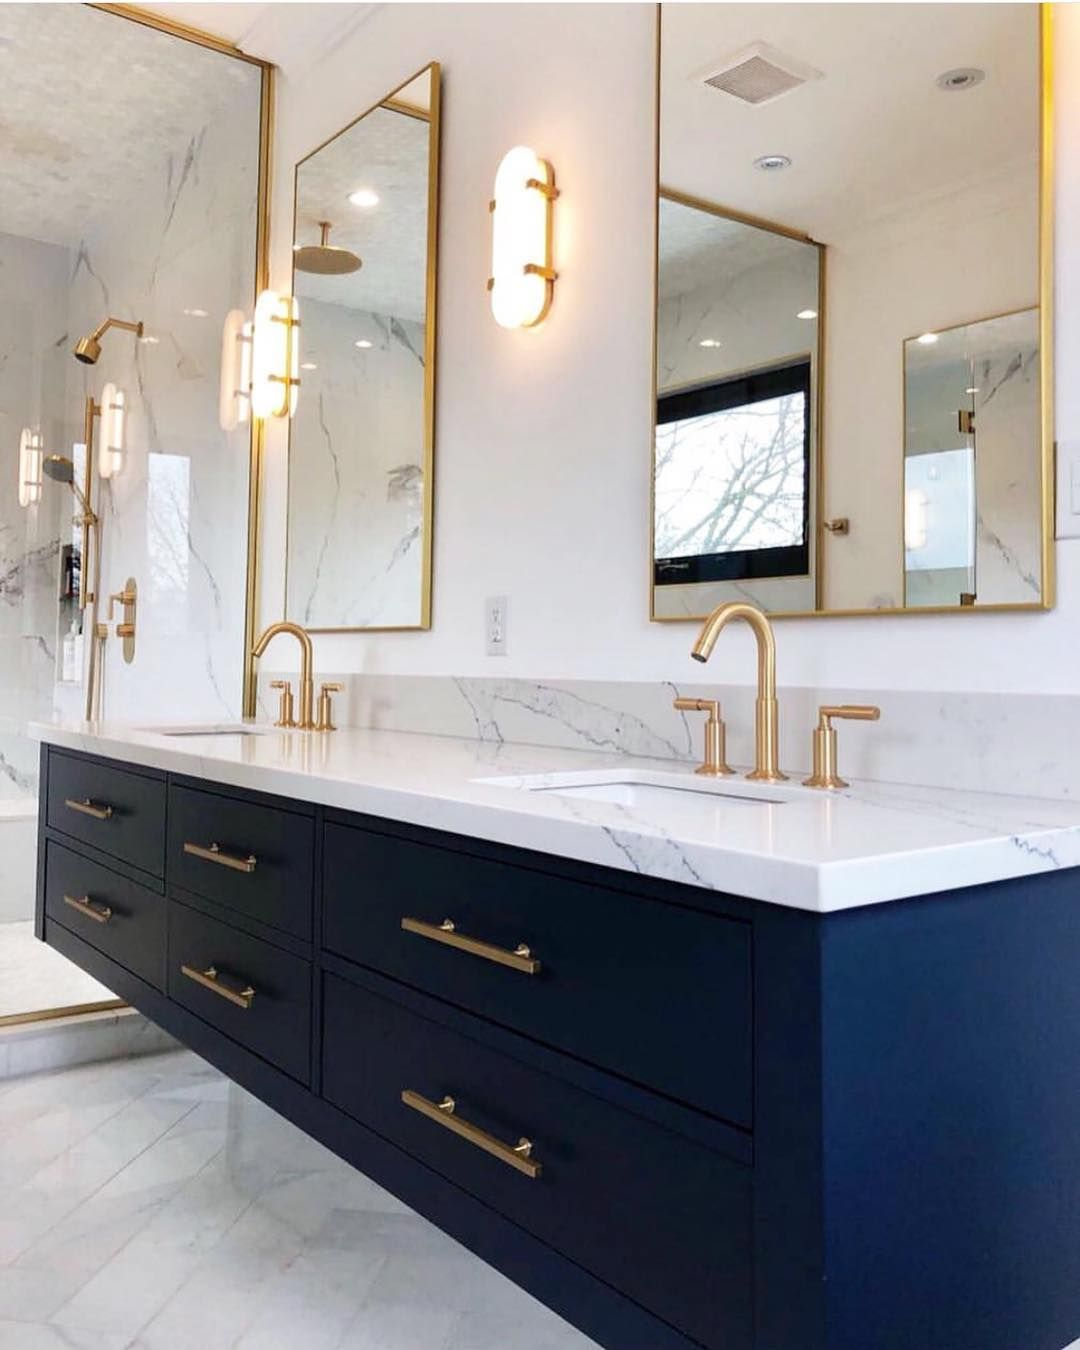 Bathrooms Of Instagram On Instagram Floating Vanity Done Right By Bonbuildinggroup F Floating Bathroom Vanities Modern Bathroom Bathroom Interior Design